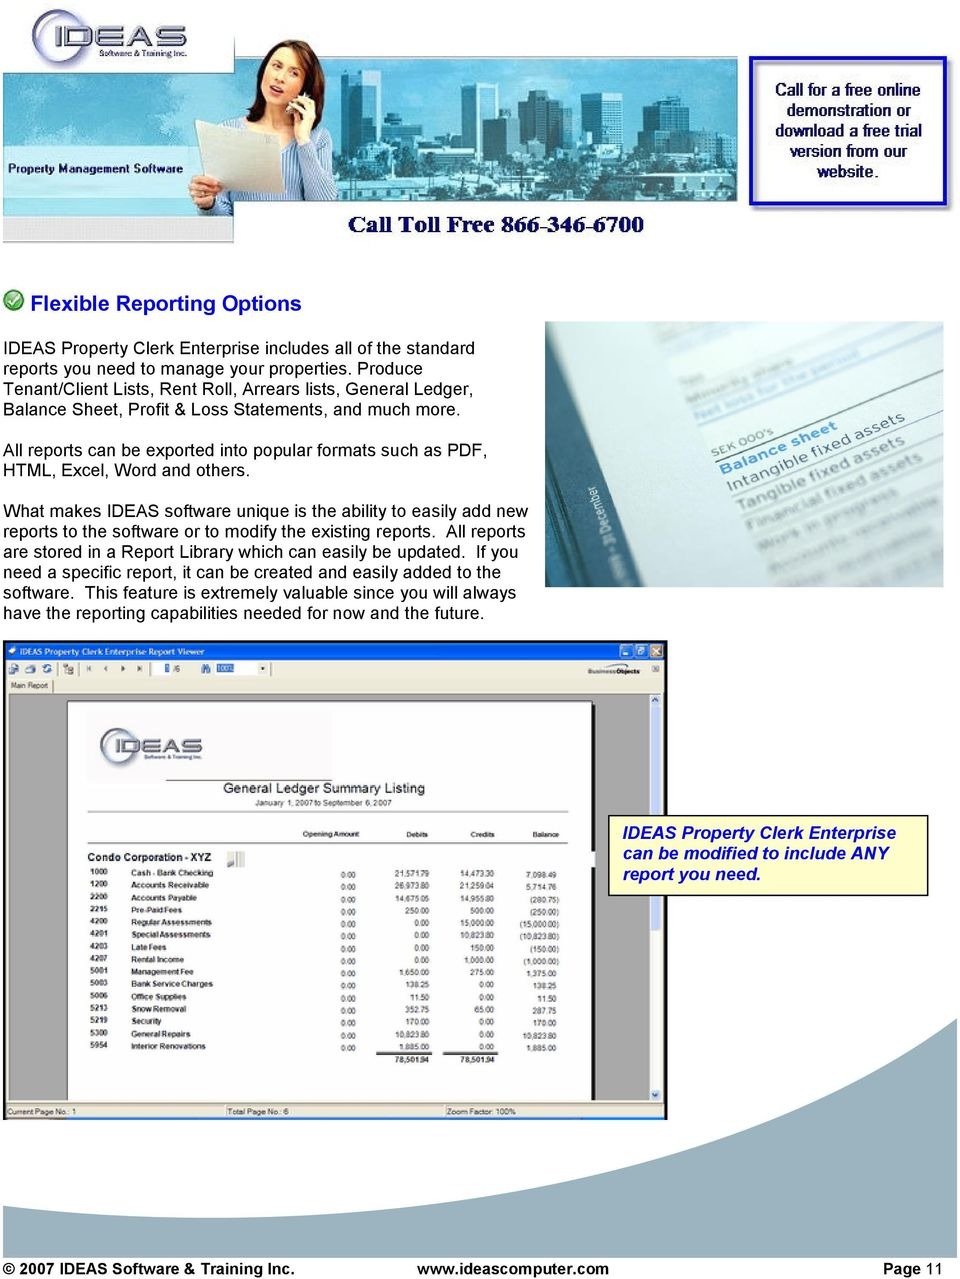 All reports can be exported into popular formats such as PDF, HTML, Excel, Word and others.